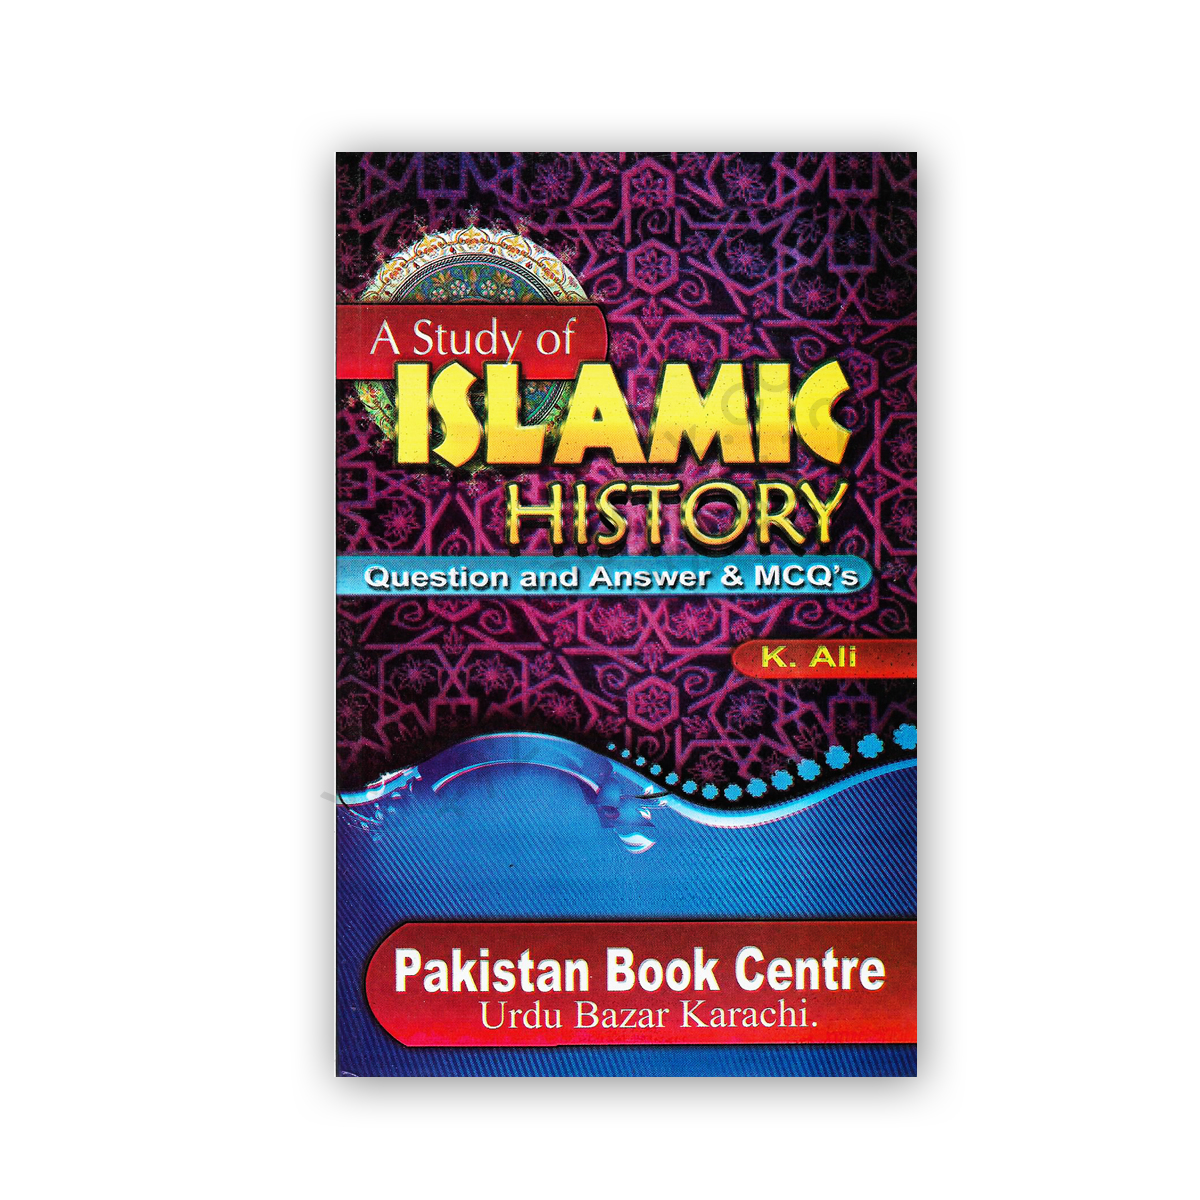 A Study of Islamic History Questions Answers & MCQs By K Ali - Pakistan Book